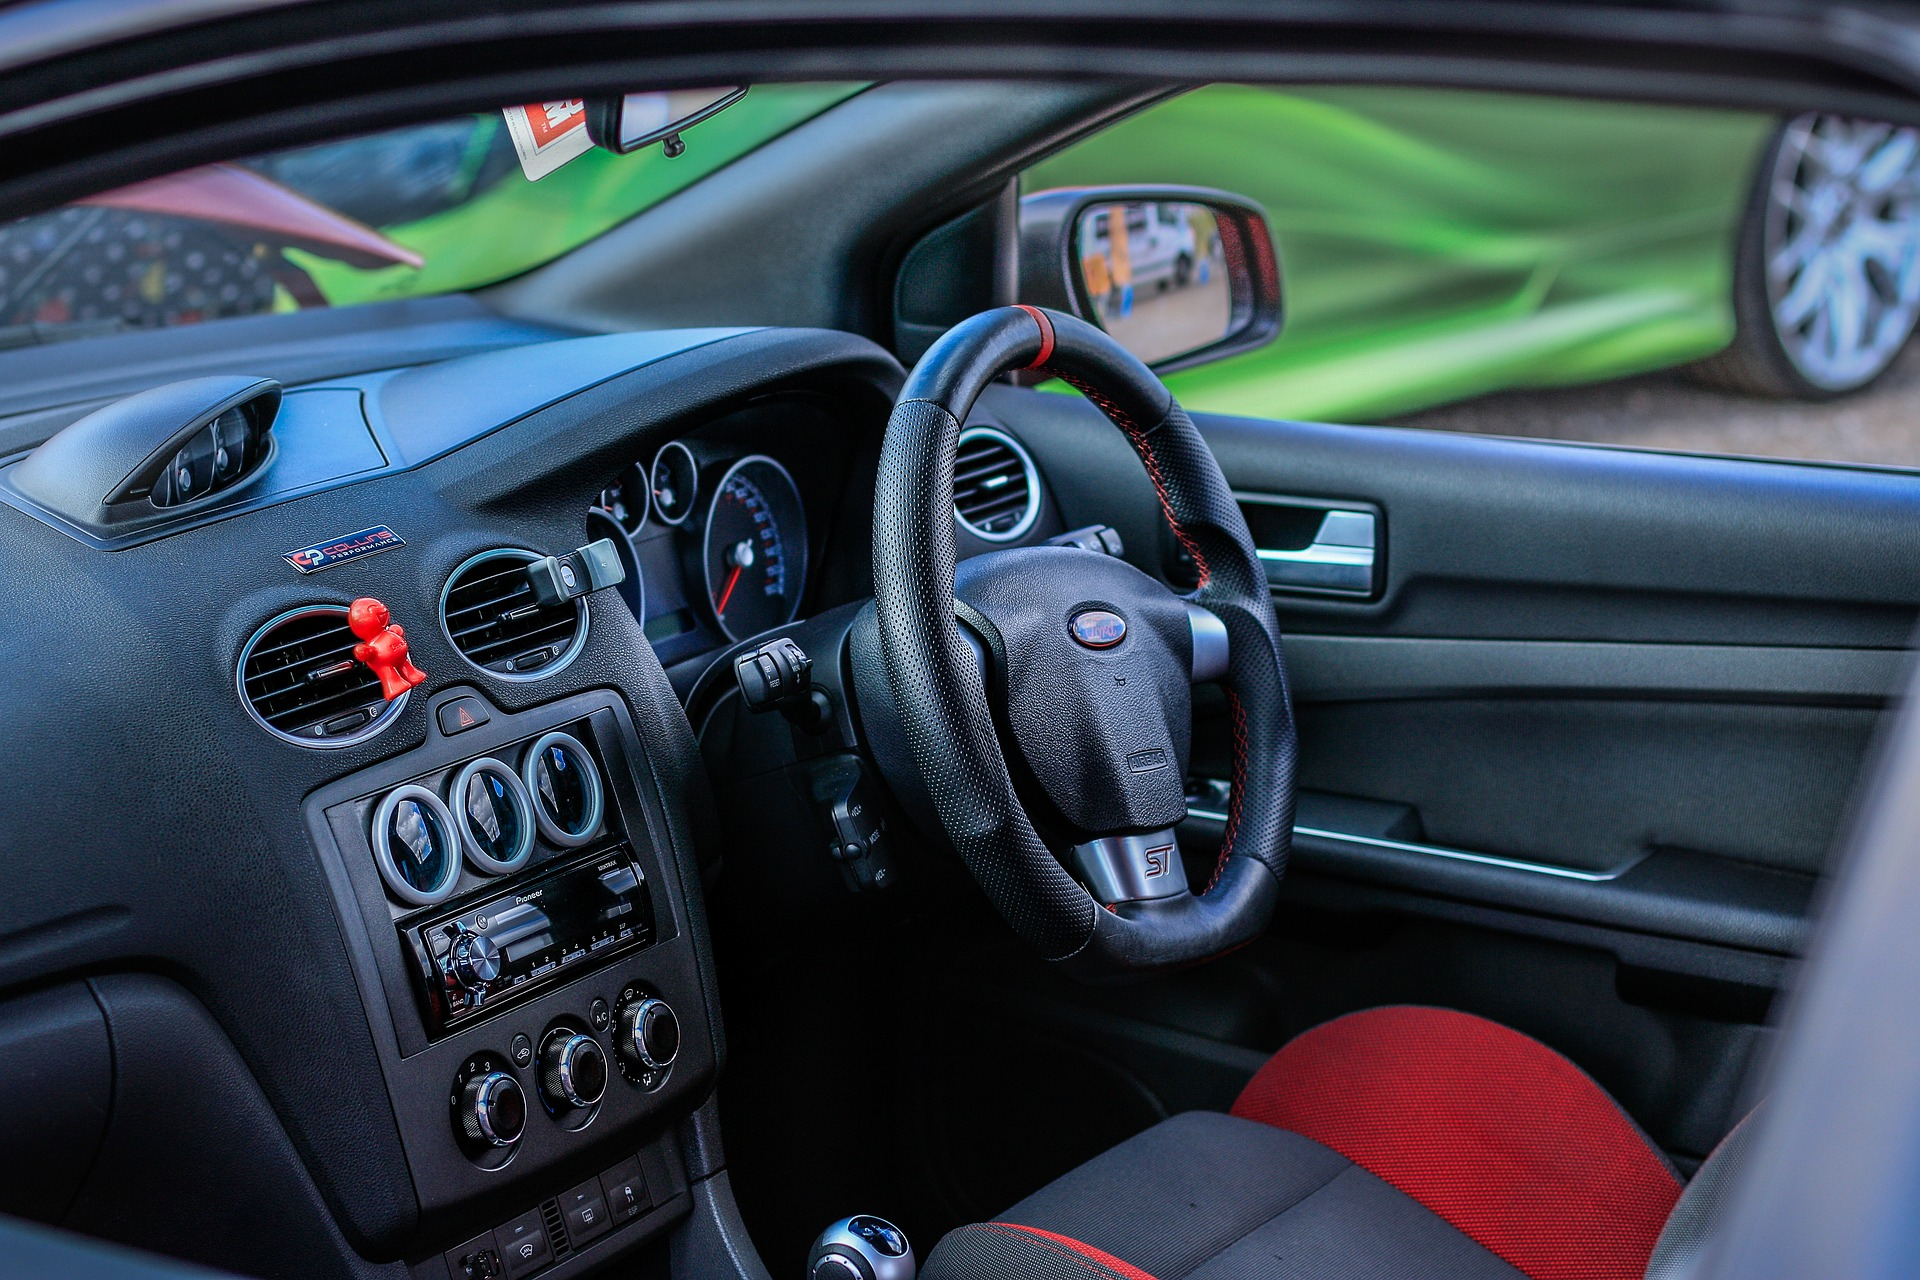 Red and black Ford Focus interiror